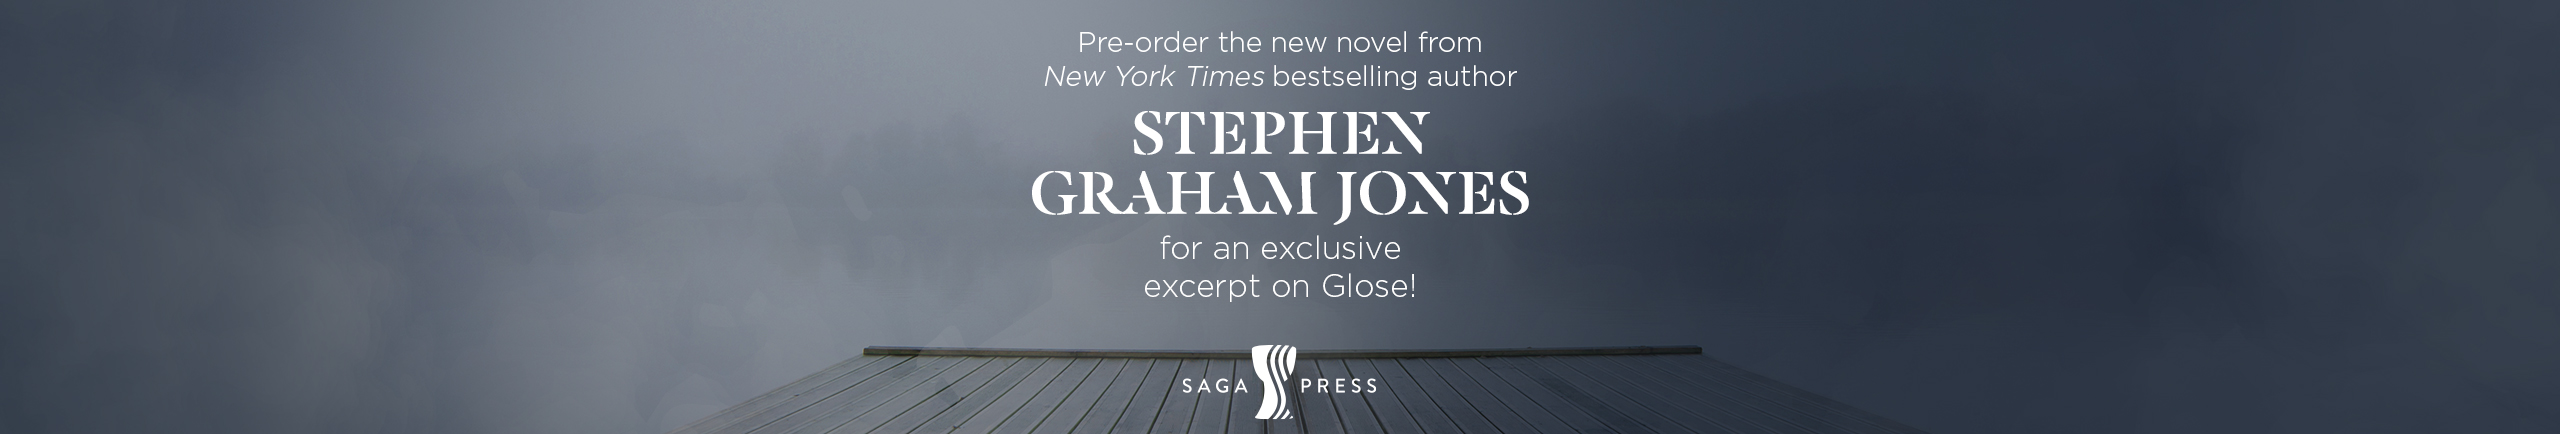 Pre-order My Heart Is a Chainsaw and receive an exclusive excerpt on Glose!